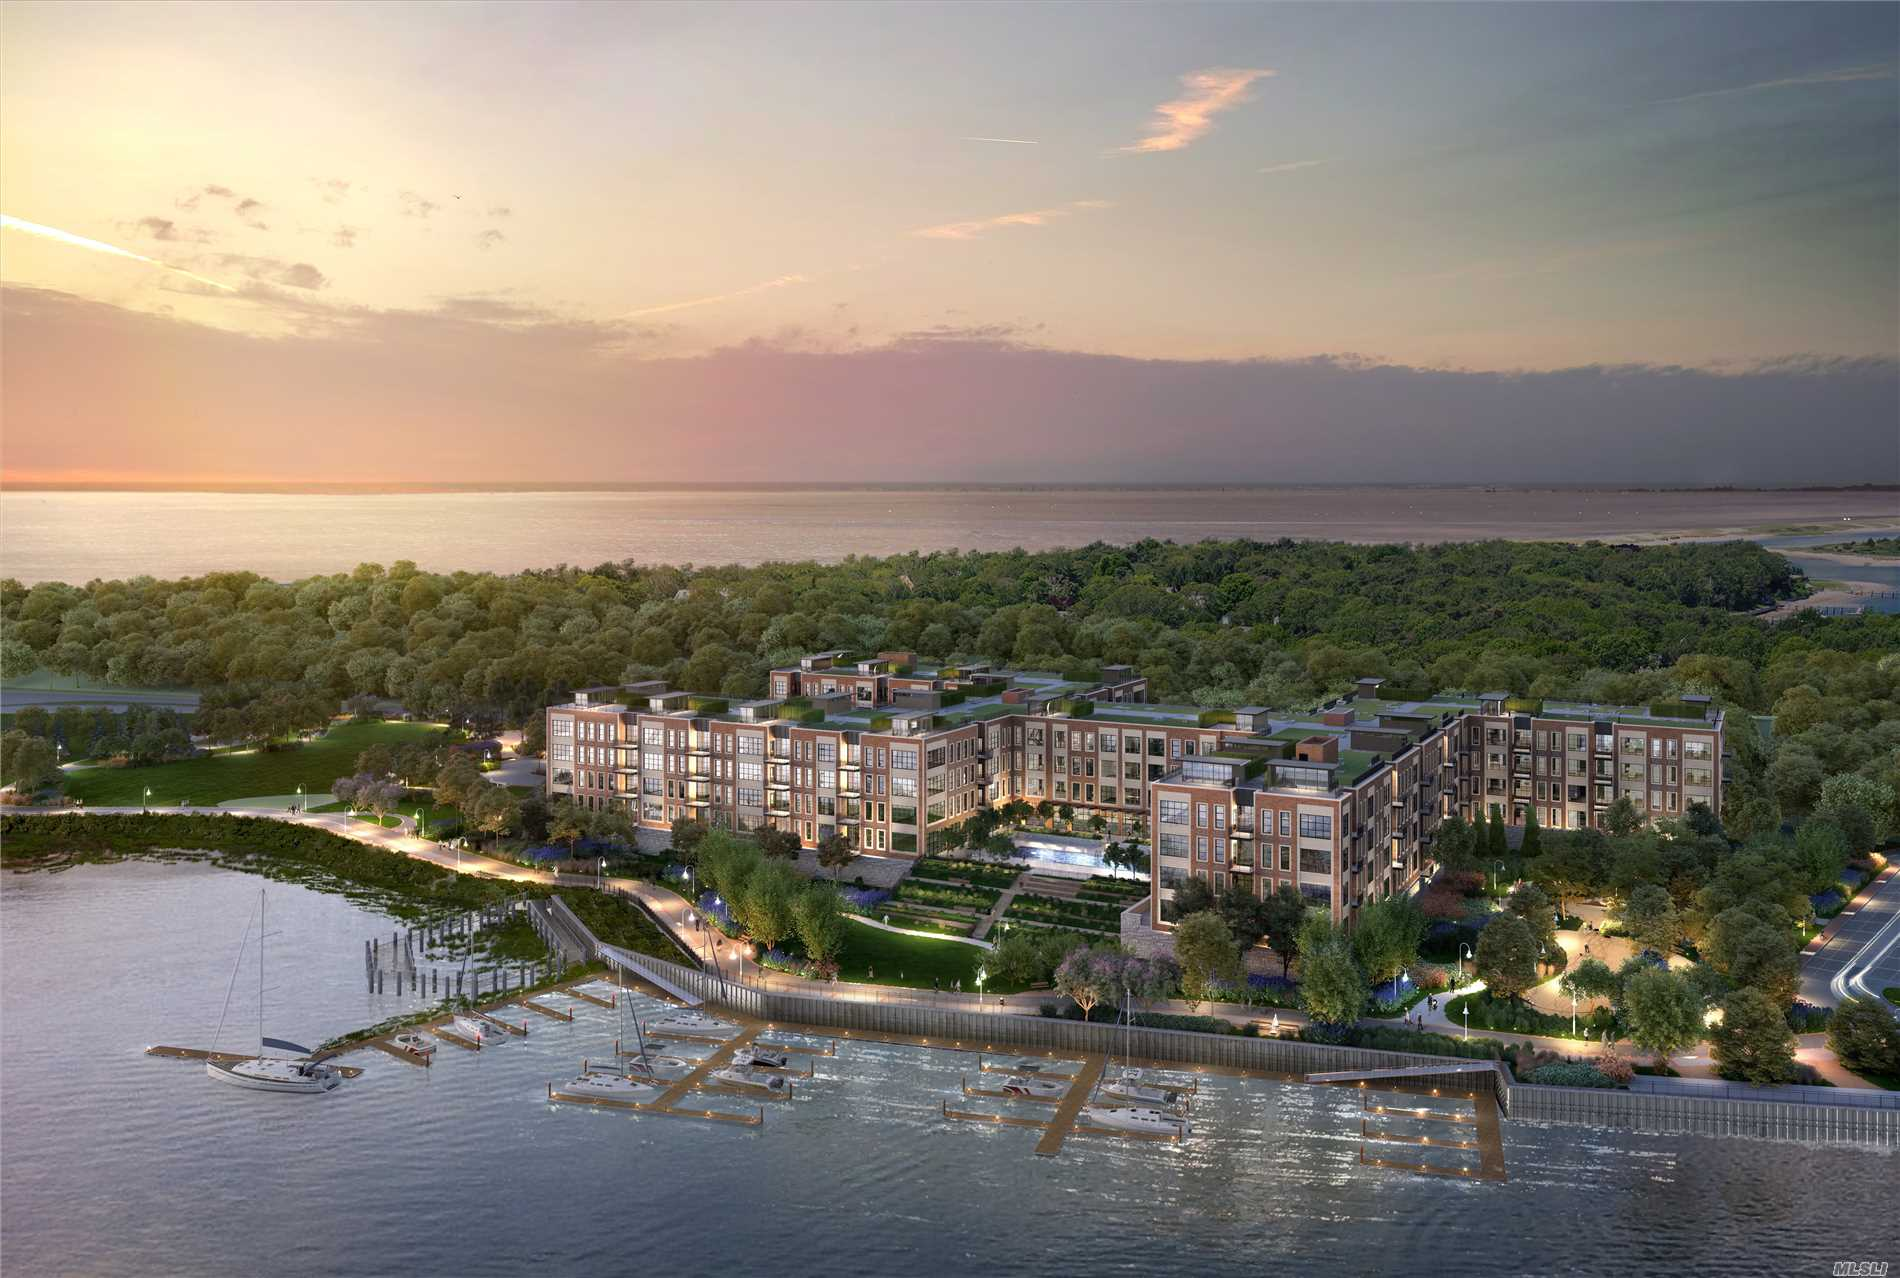 Property for sale at 100 Garvies Point Road # 1036, Glen Cove NY 11542, Glen Cove,  New York 11542